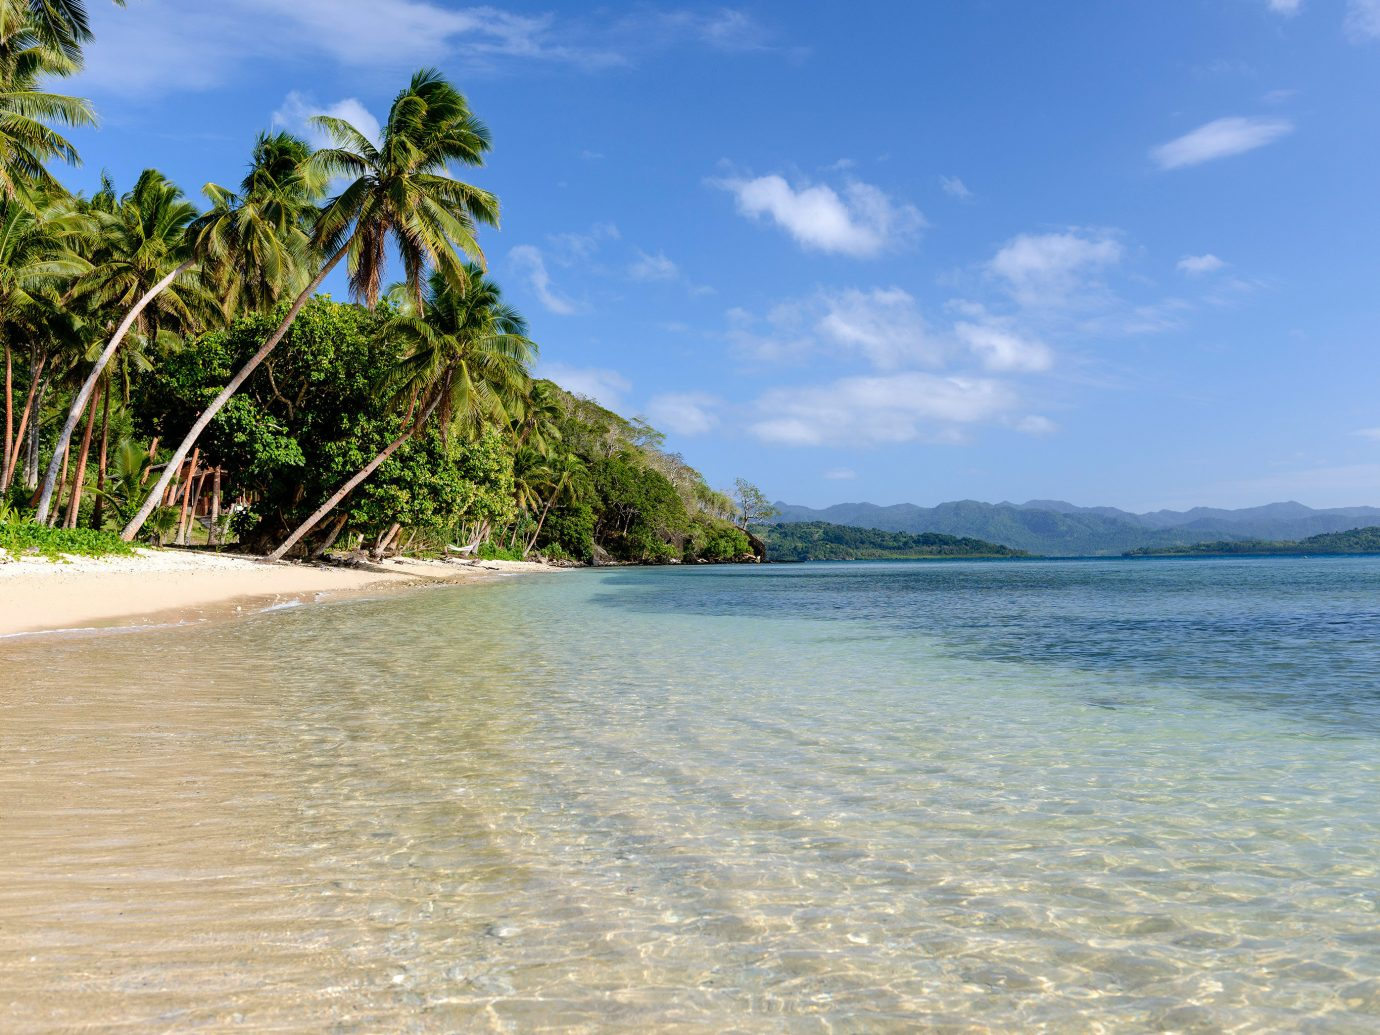 All-Inclusive Resorts Beach Beachfront Boutique Hotels Hotels Luxury Nature Ocean Outdoors Resort Romance Scenic views outdoor sky tree water shore body of water Sea Coast vacation bay caribbean Island tropics Lake cape Lagoon cove islet sand